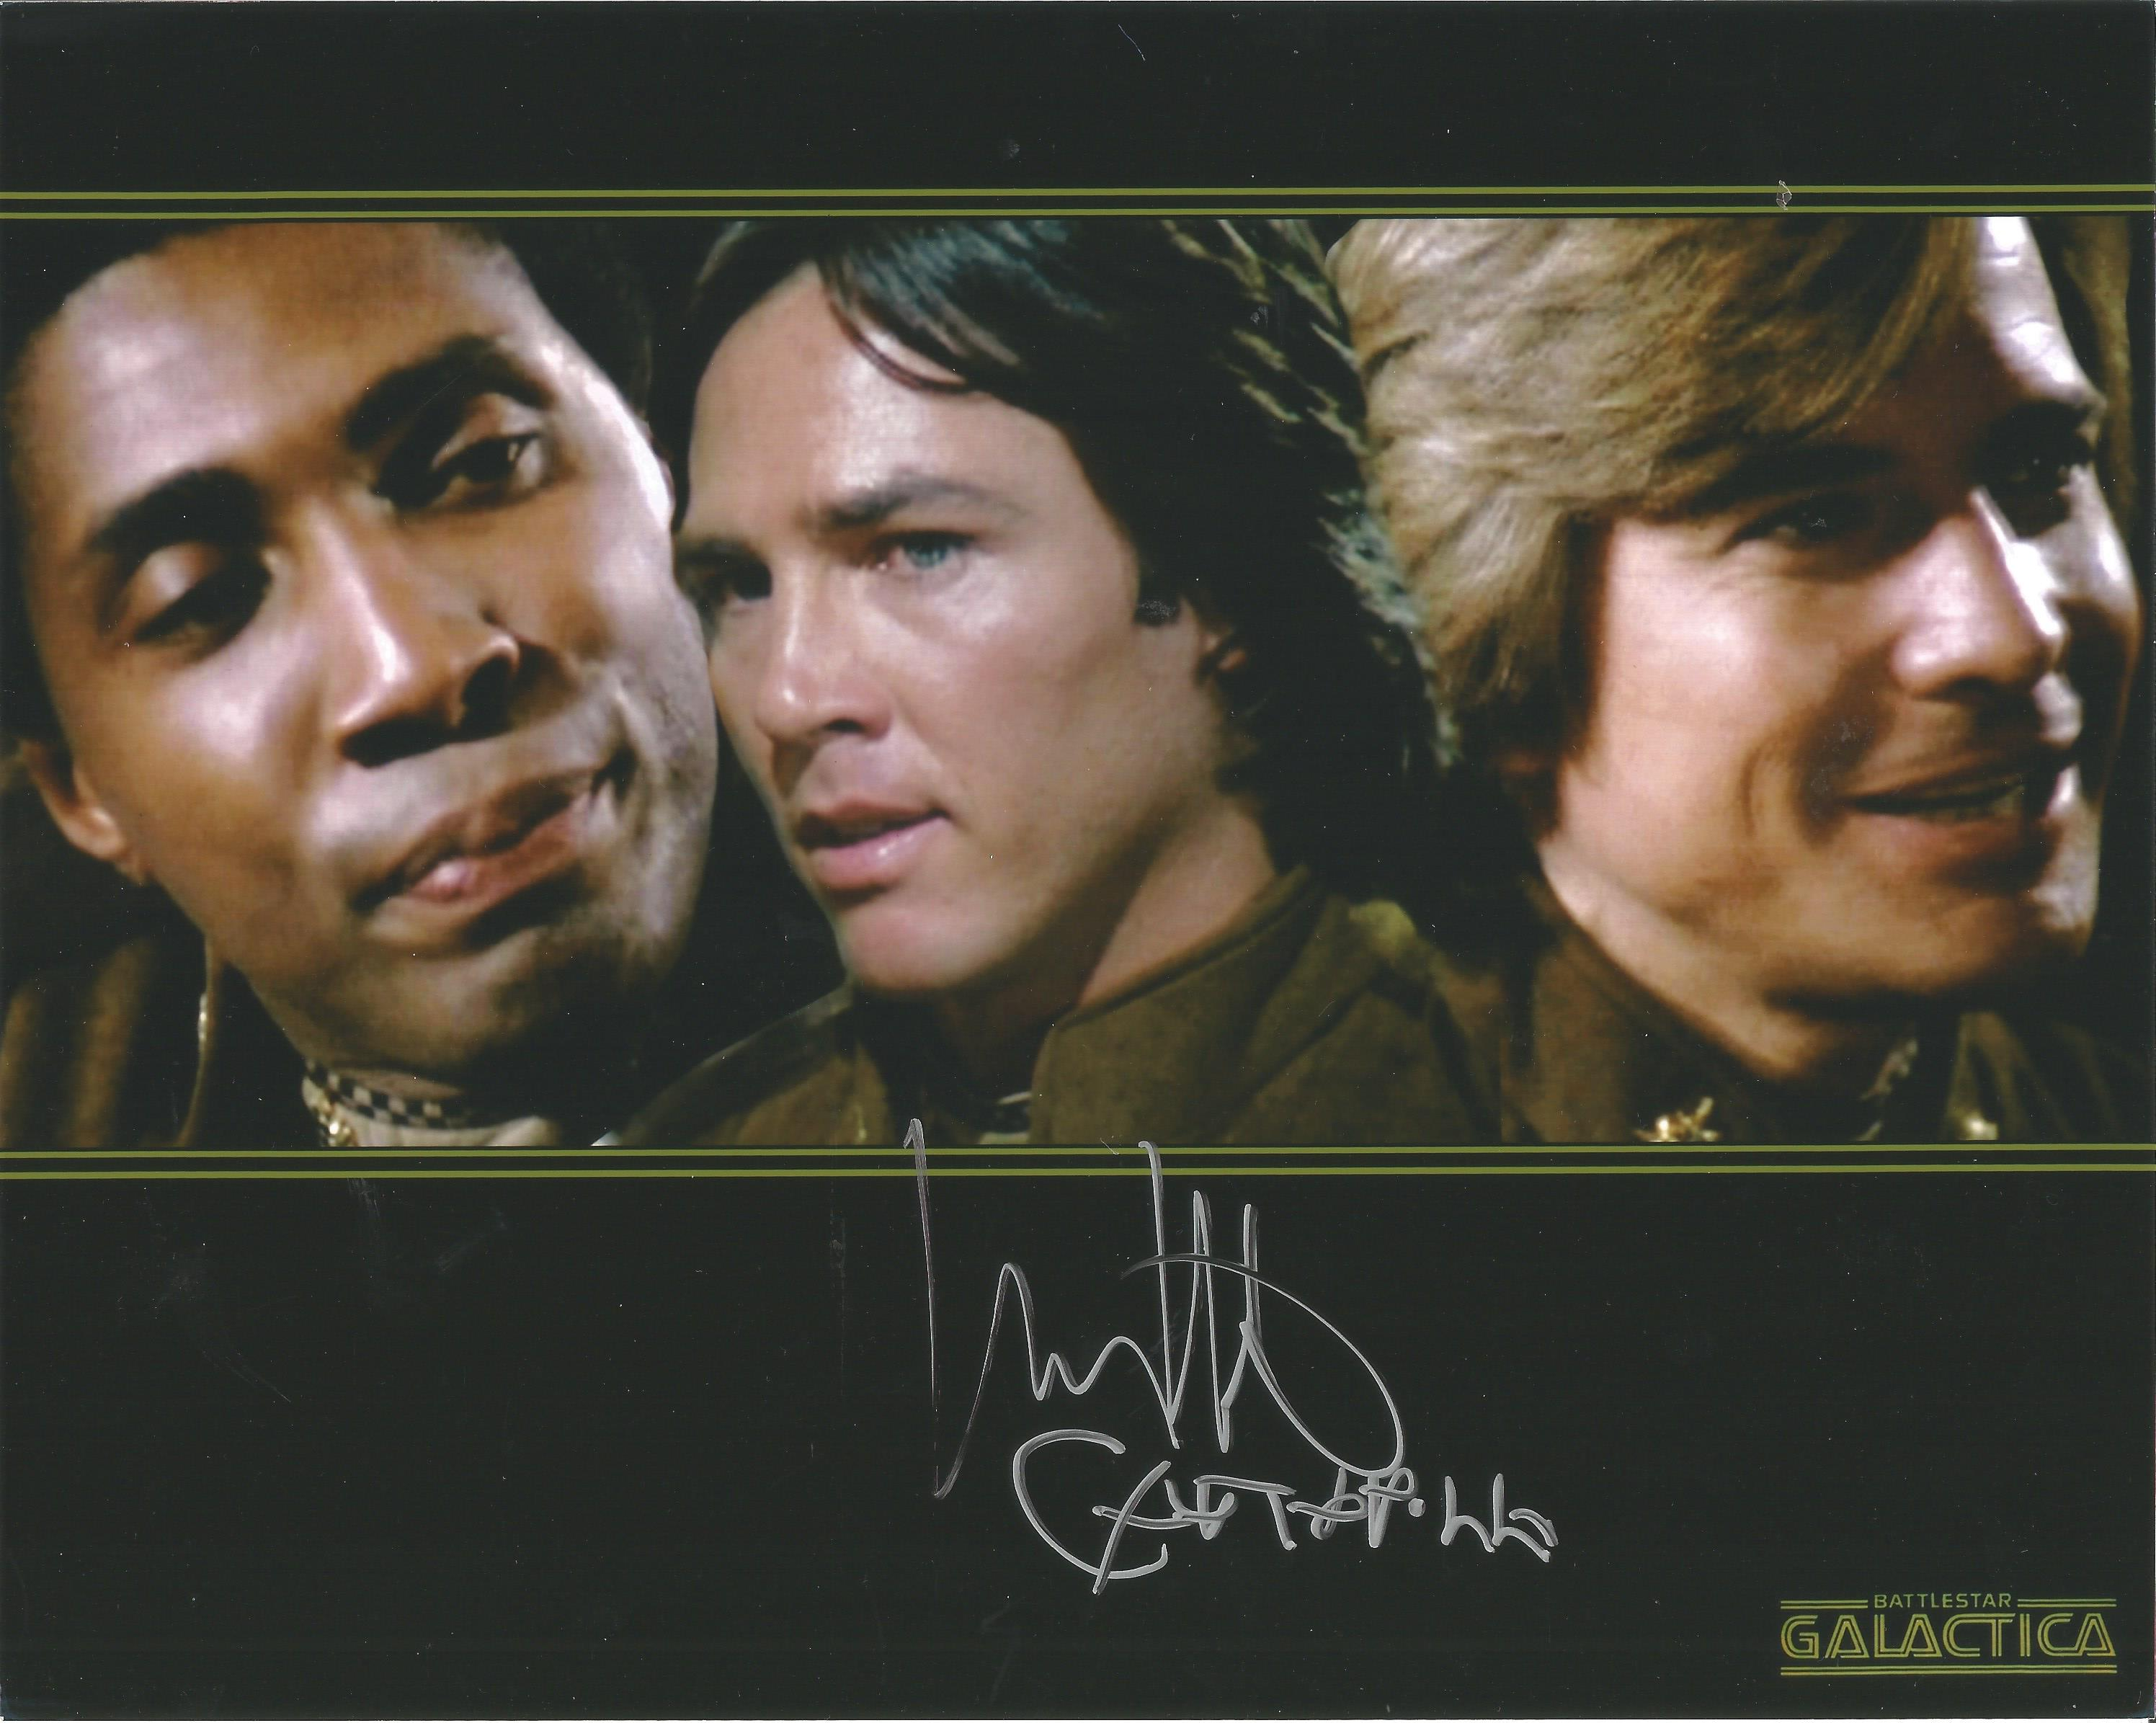 Richard Hatch signed 10x8 colour promo photo for Battlestar Galactica. Hatch was known for his